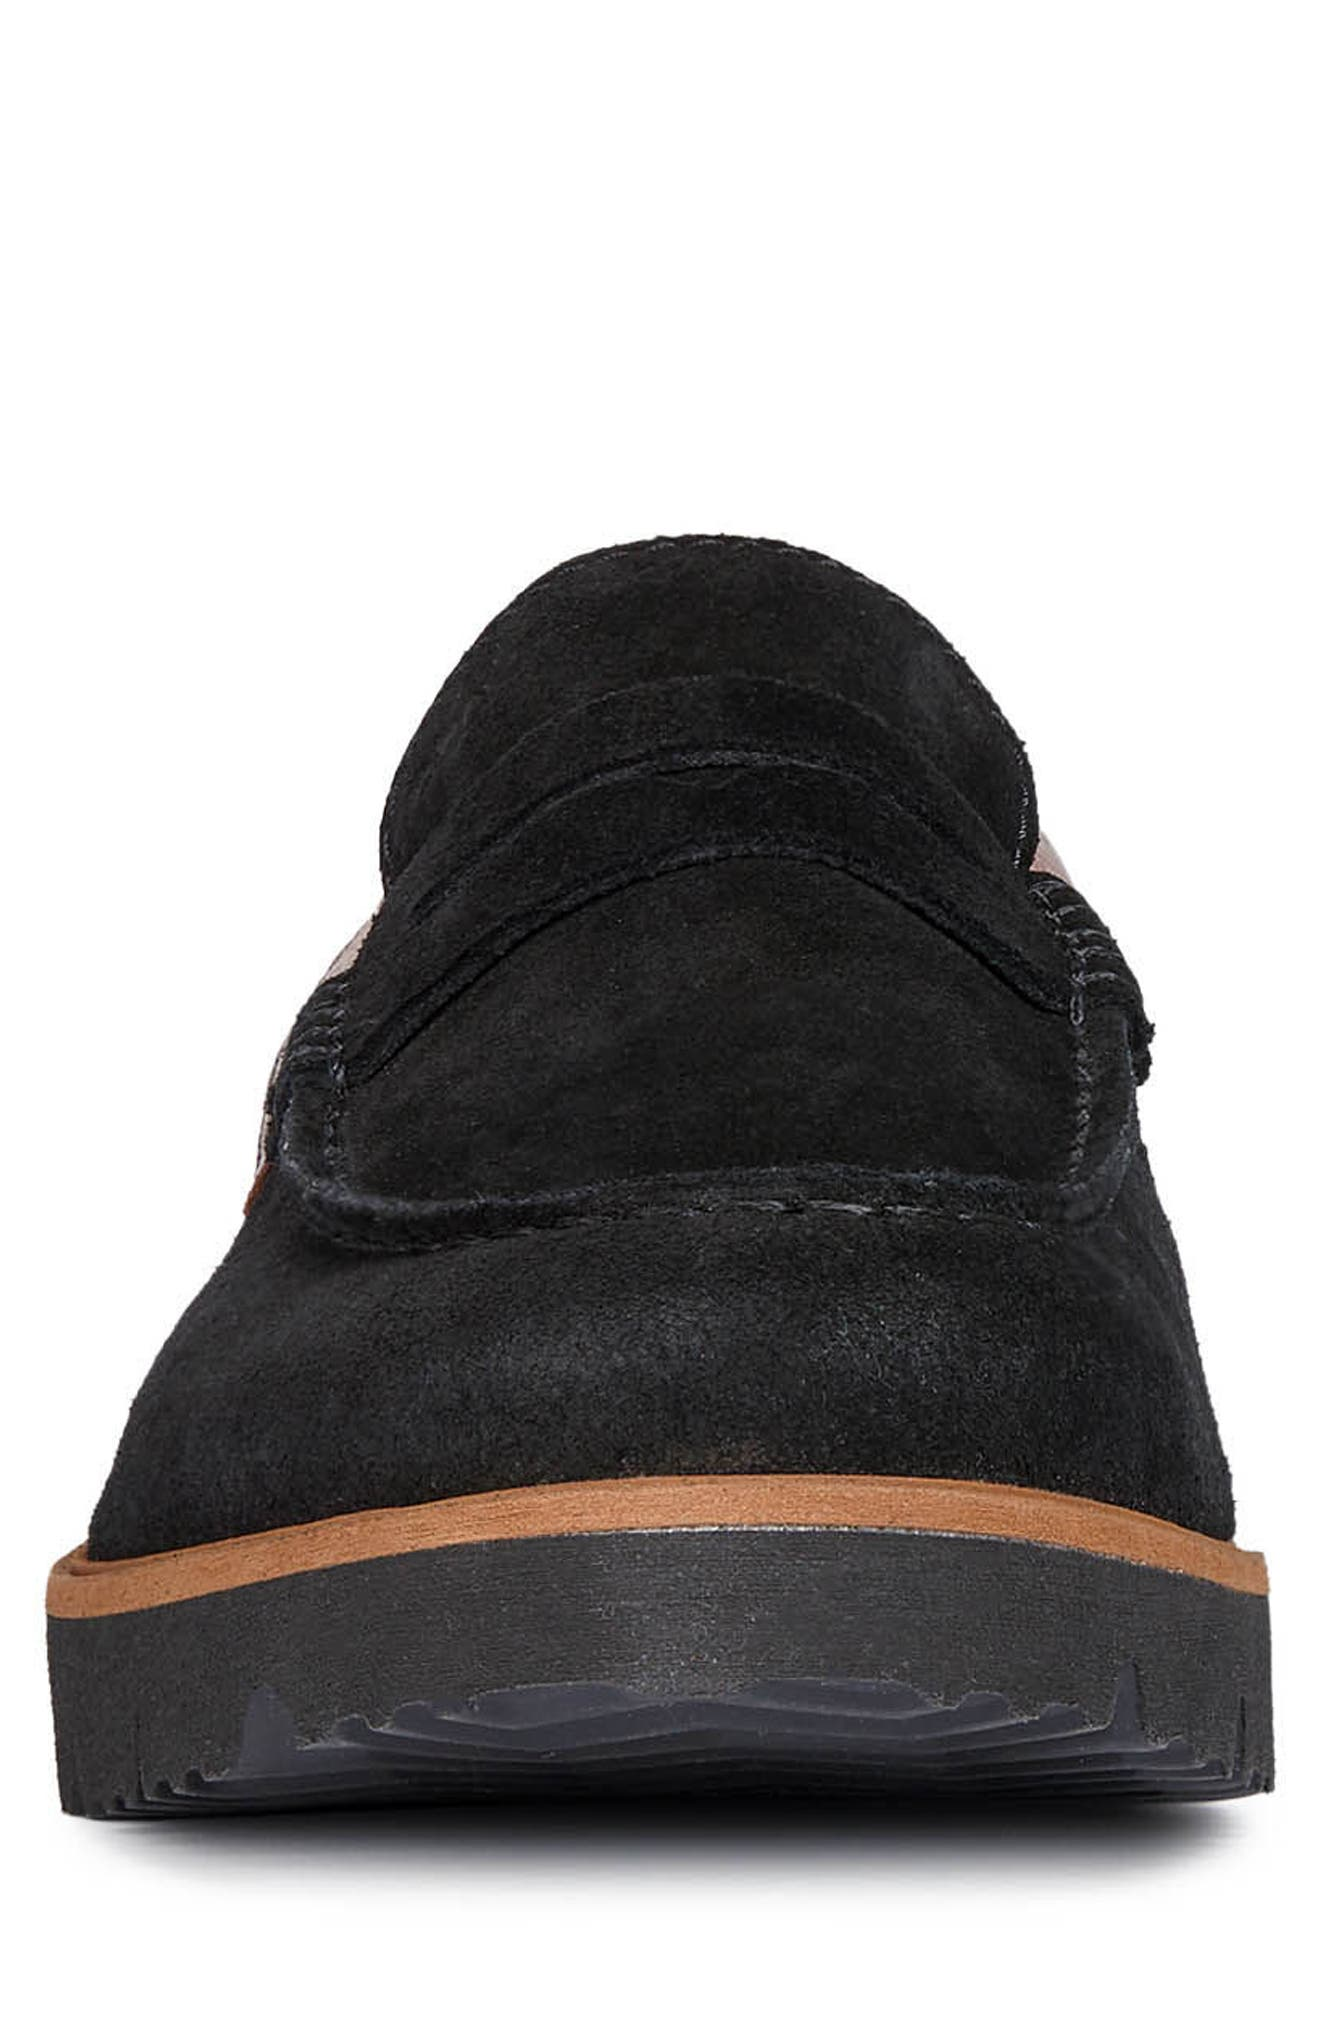 New Pluges 6 Penny Loafer,                             Alternate thumbnail 4, color,                             002